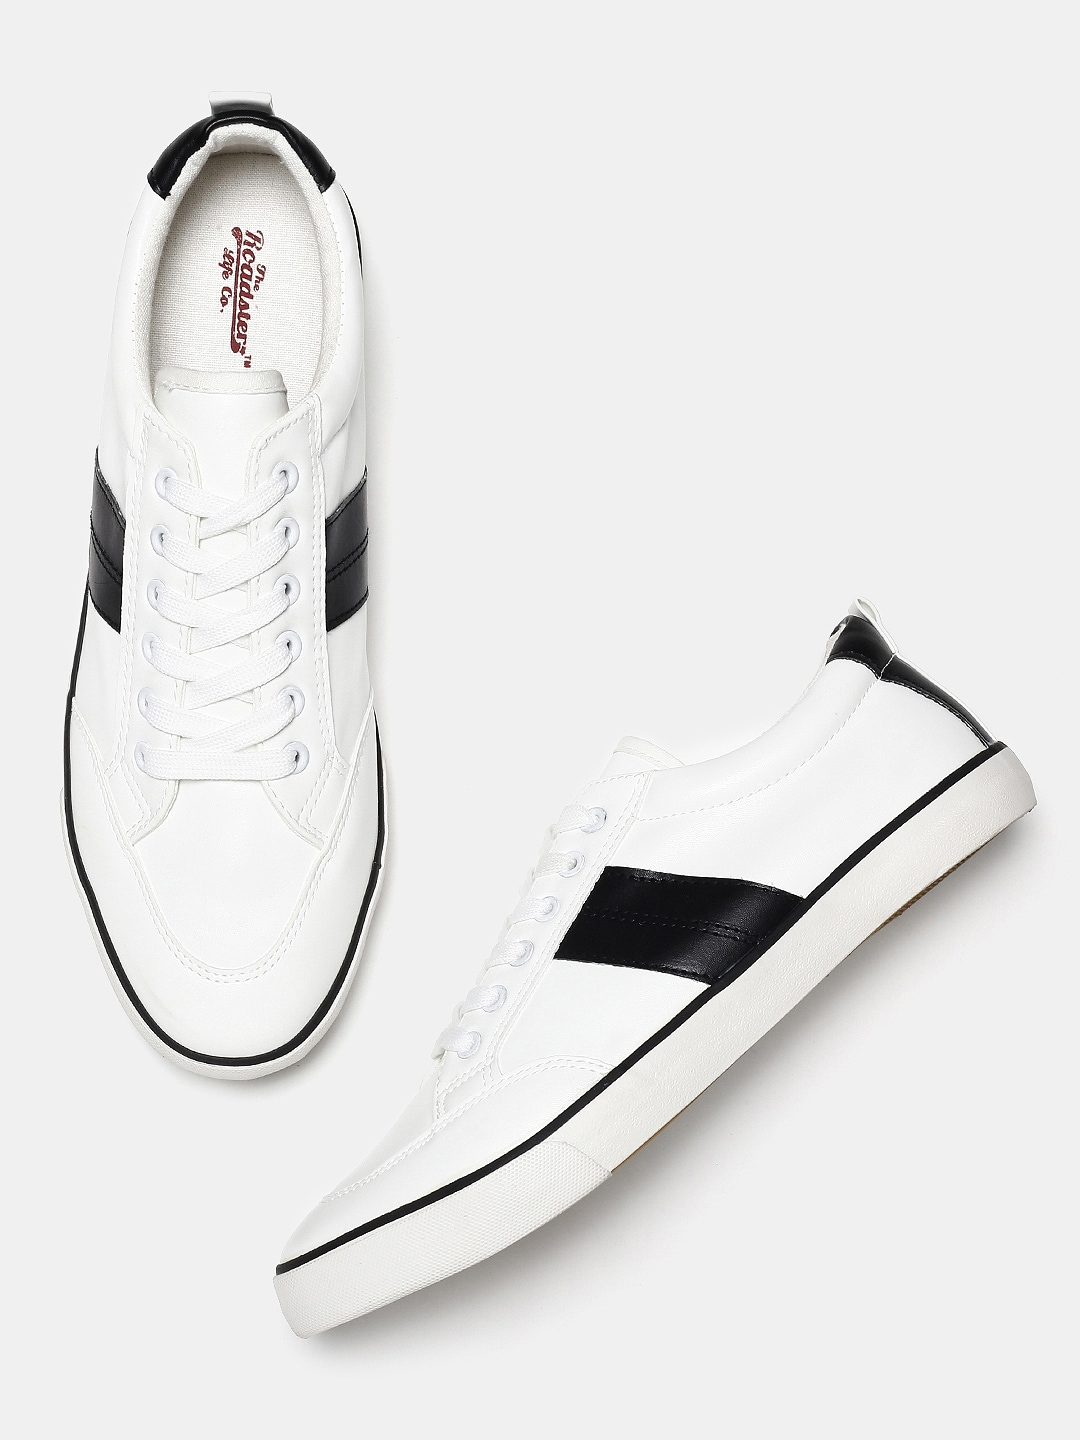 a4c005d00b941 Sneakers Under Rs 1000 - Buy Sneakers Under Rs 1000 online in India